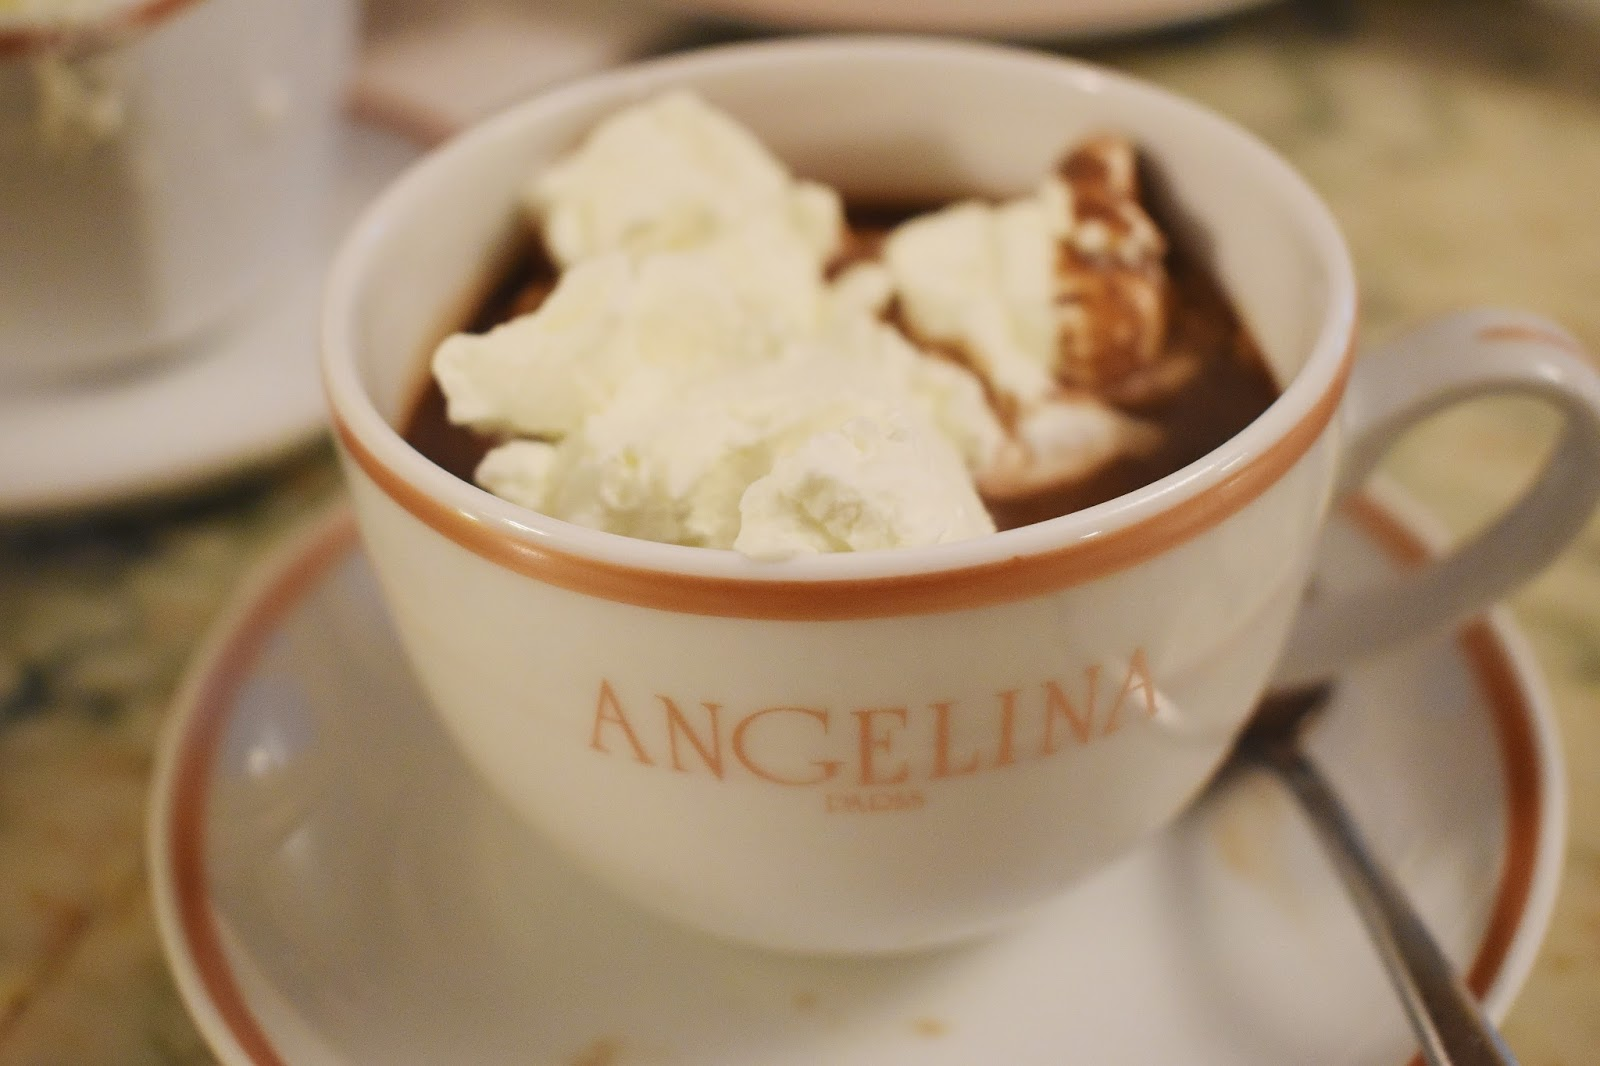 Angelina: The Best Hot Chocolate in Paris - Diary of an Expat Girl